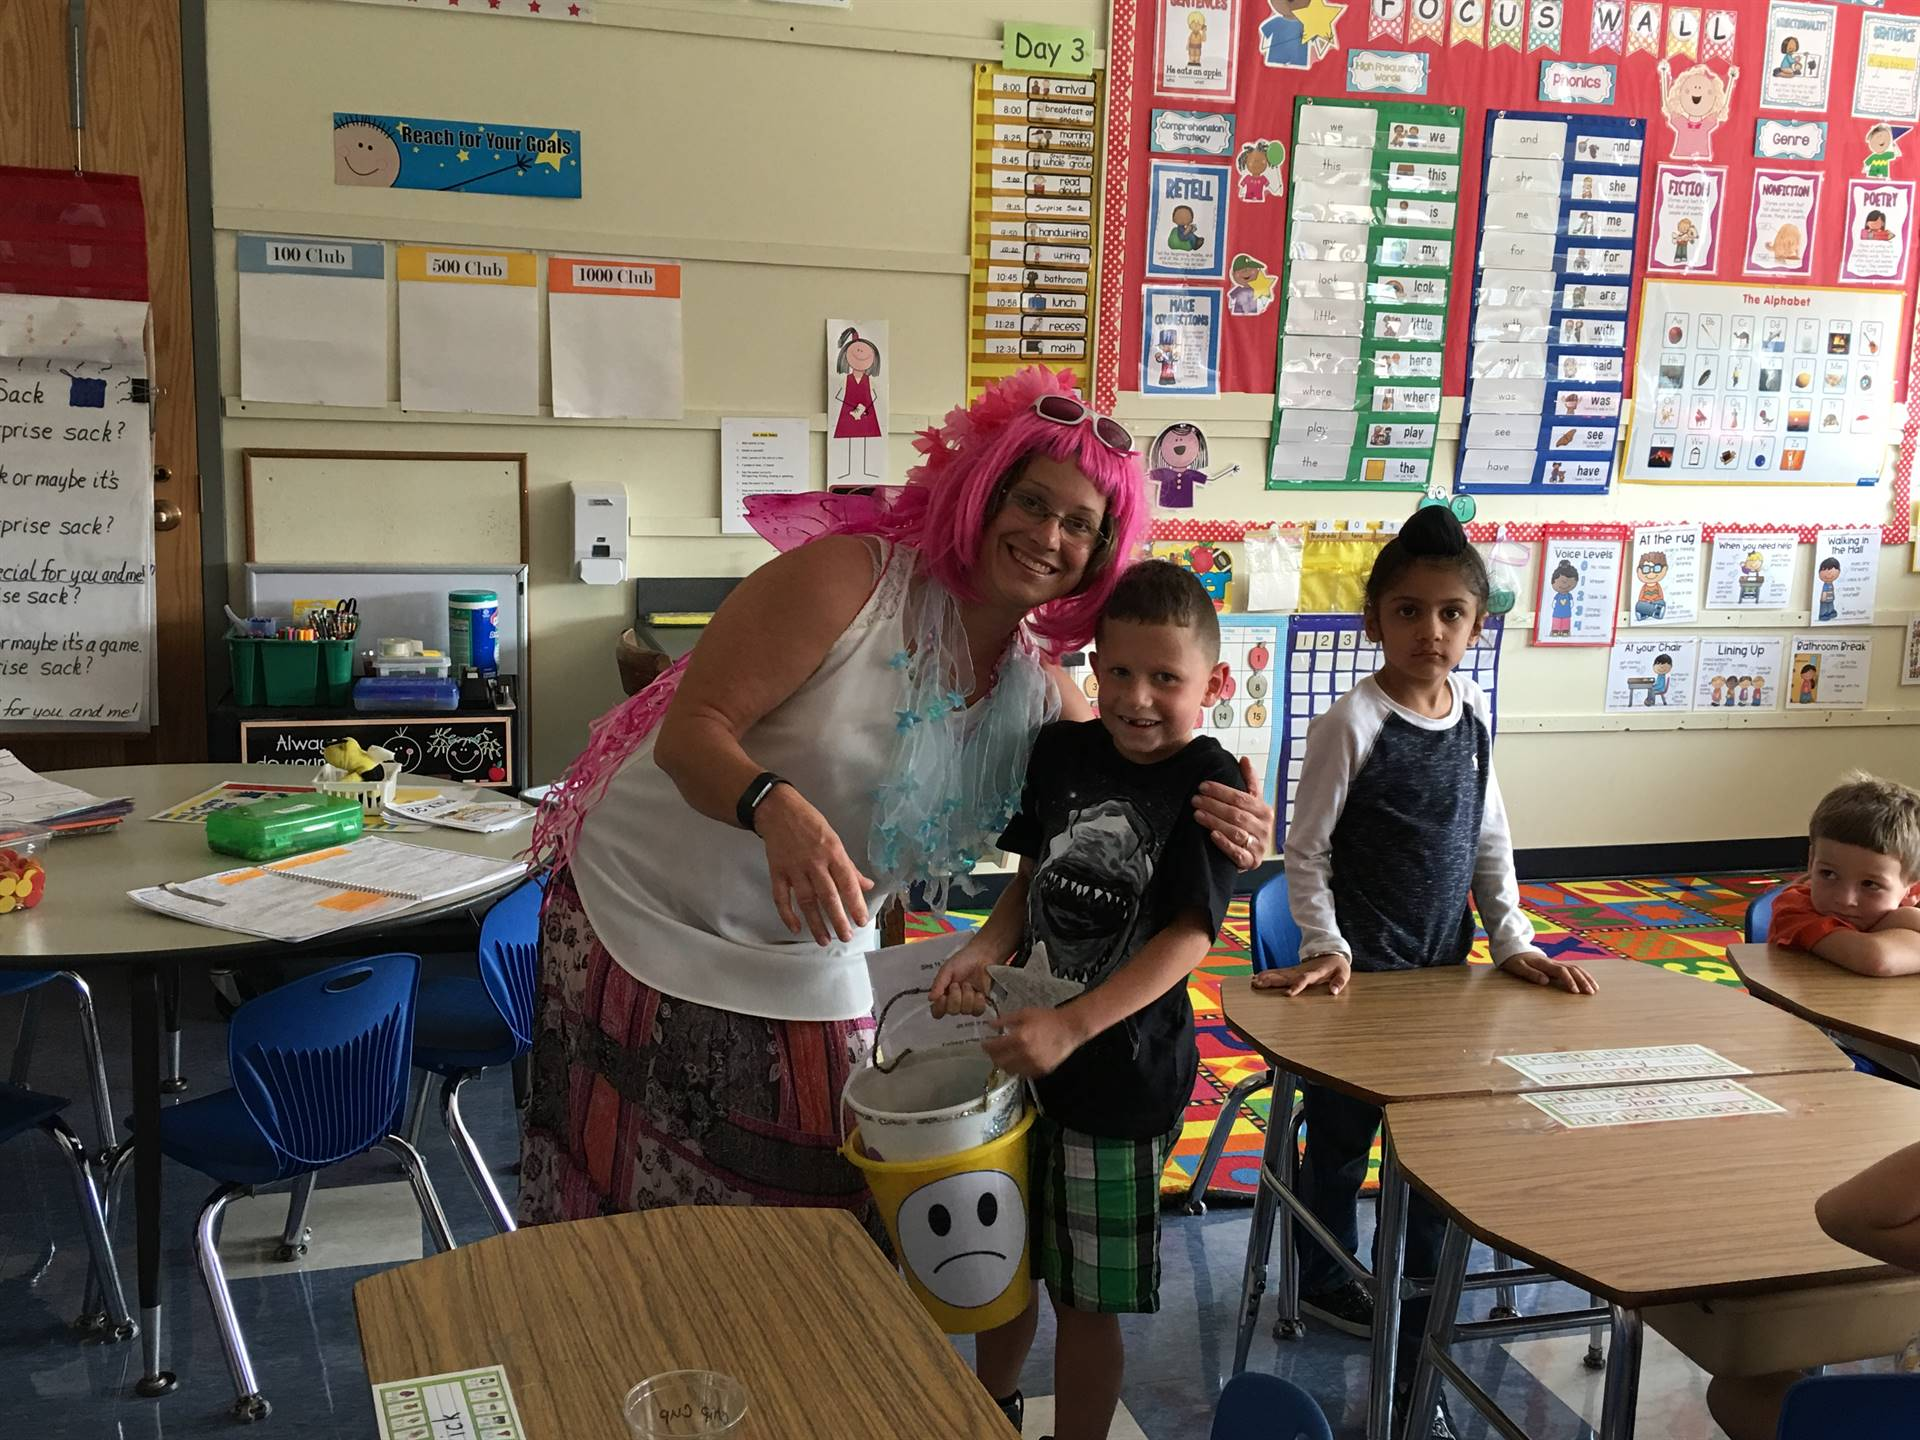 The Bucket Filling Fairy poses with 2 students.